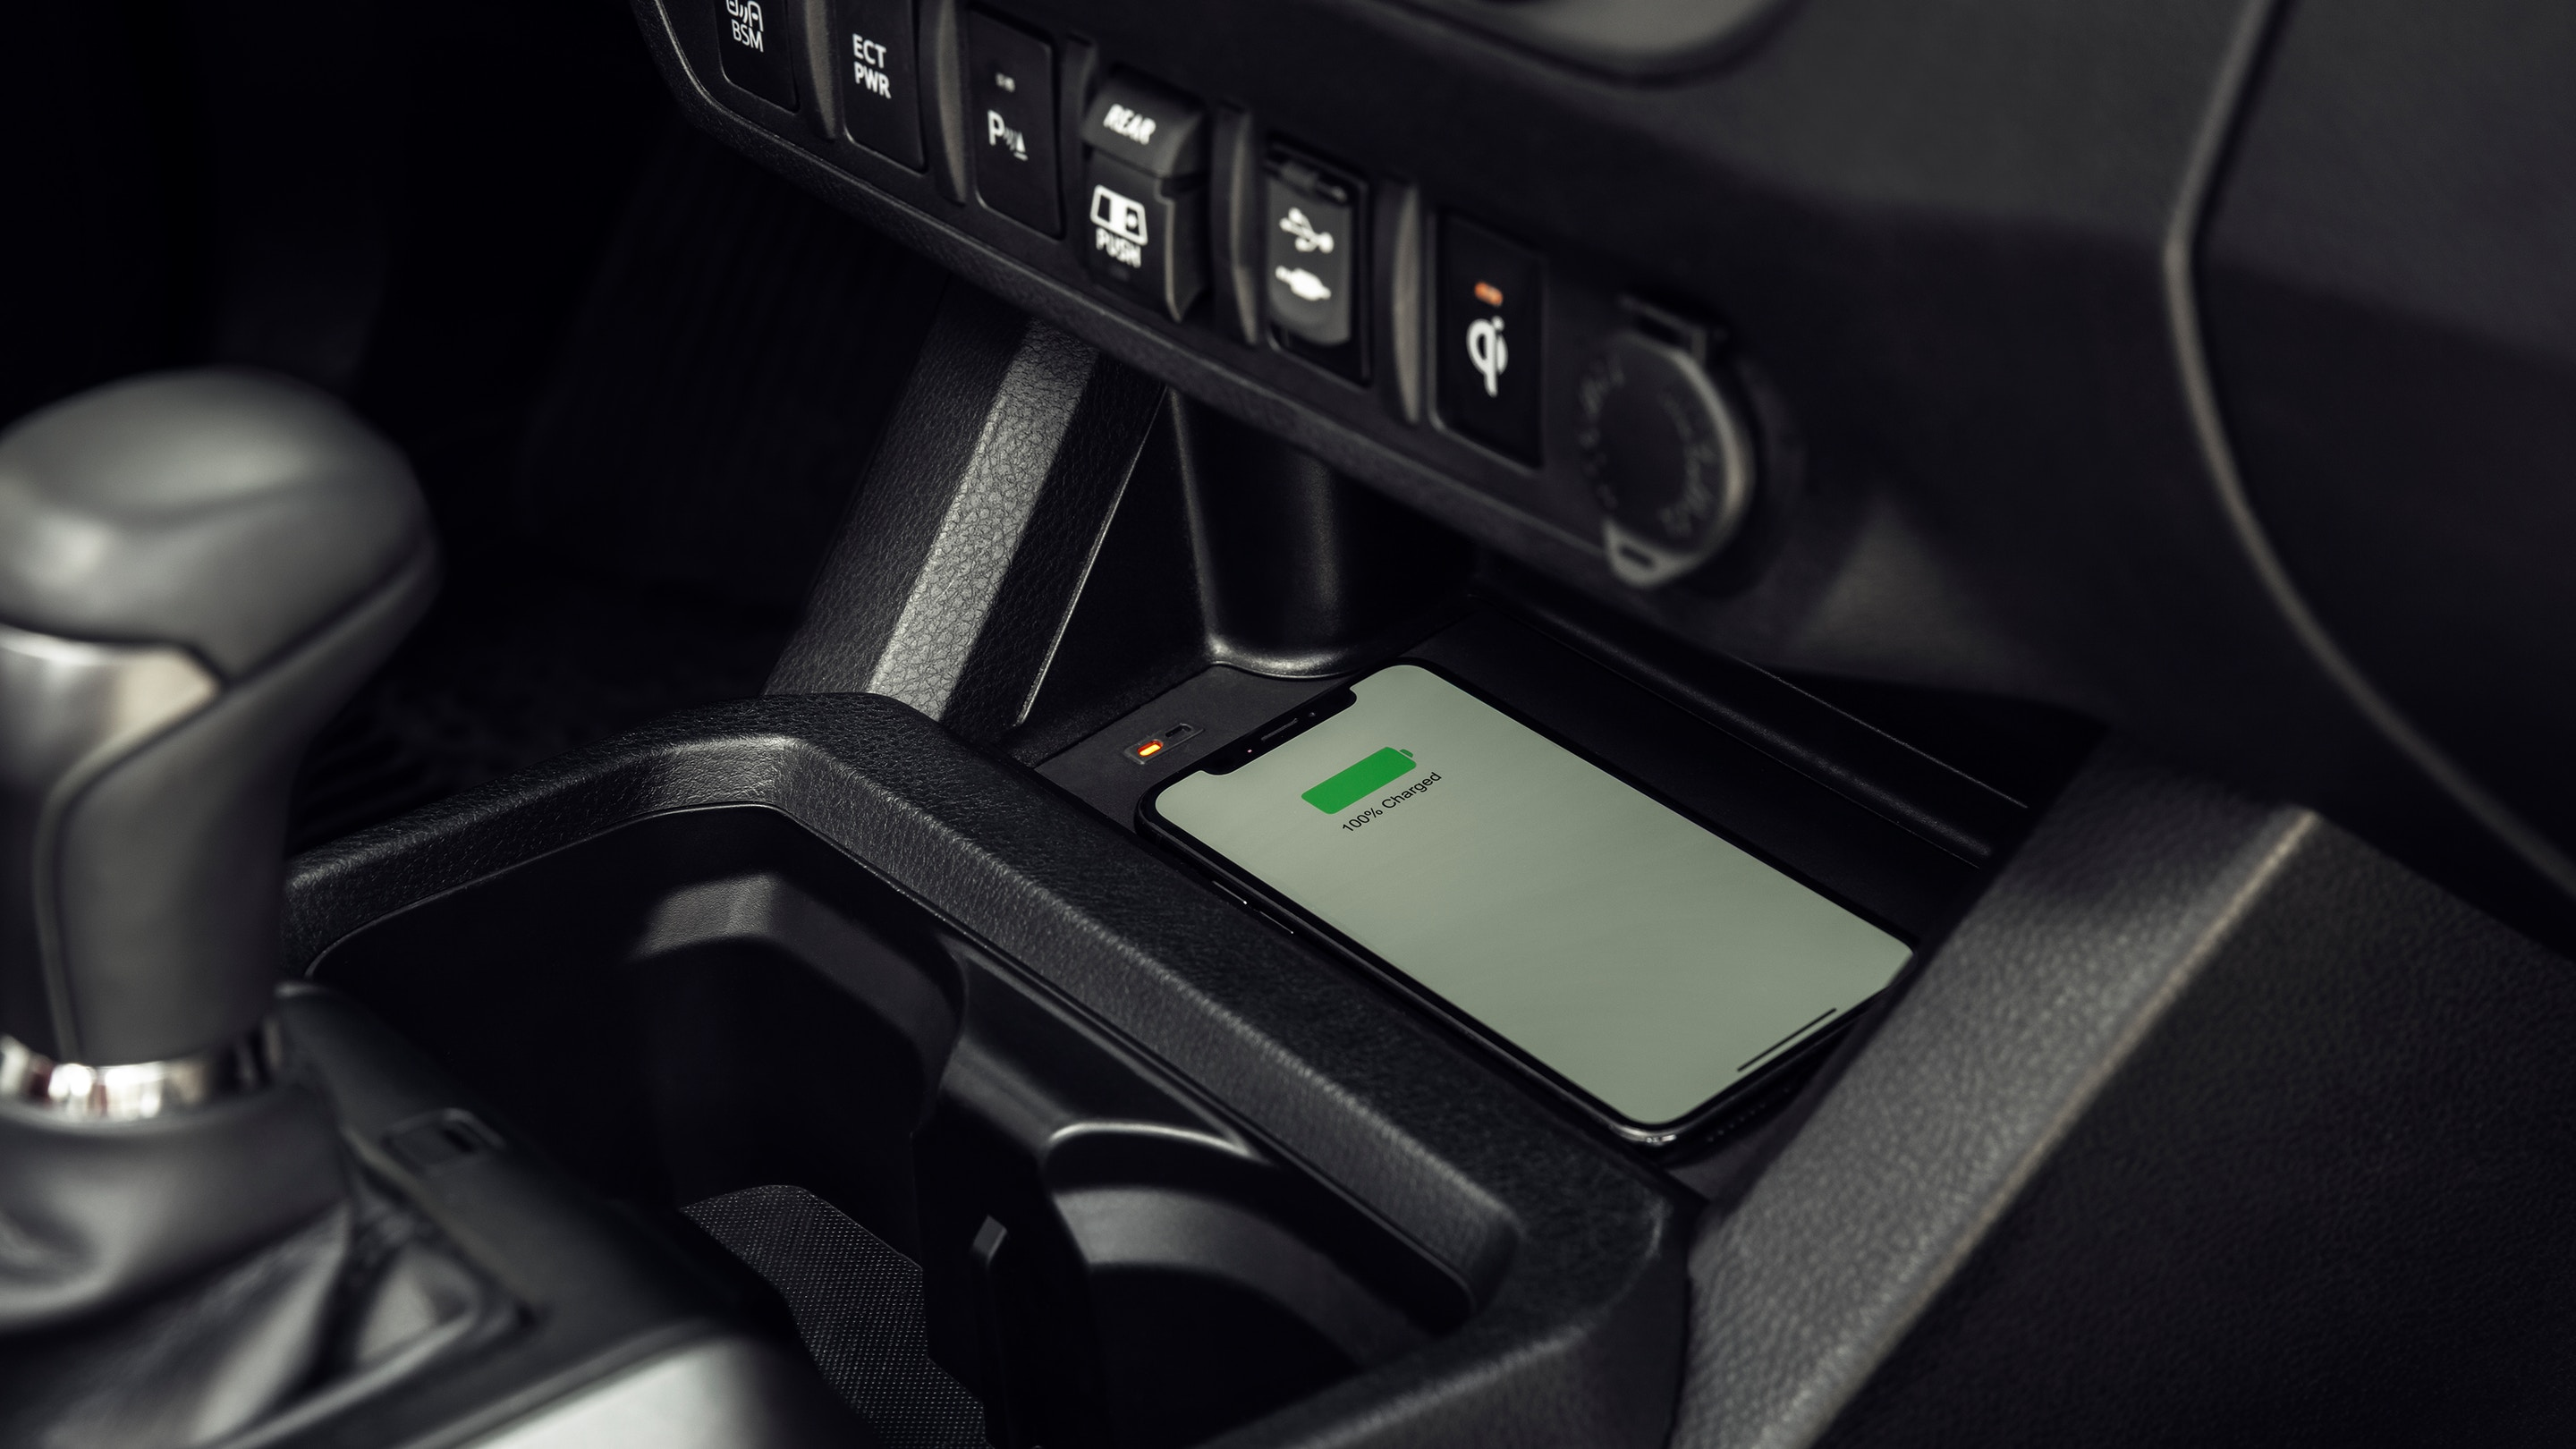 Enjoy Wirelessly Charging Your Device in the Tacoma!